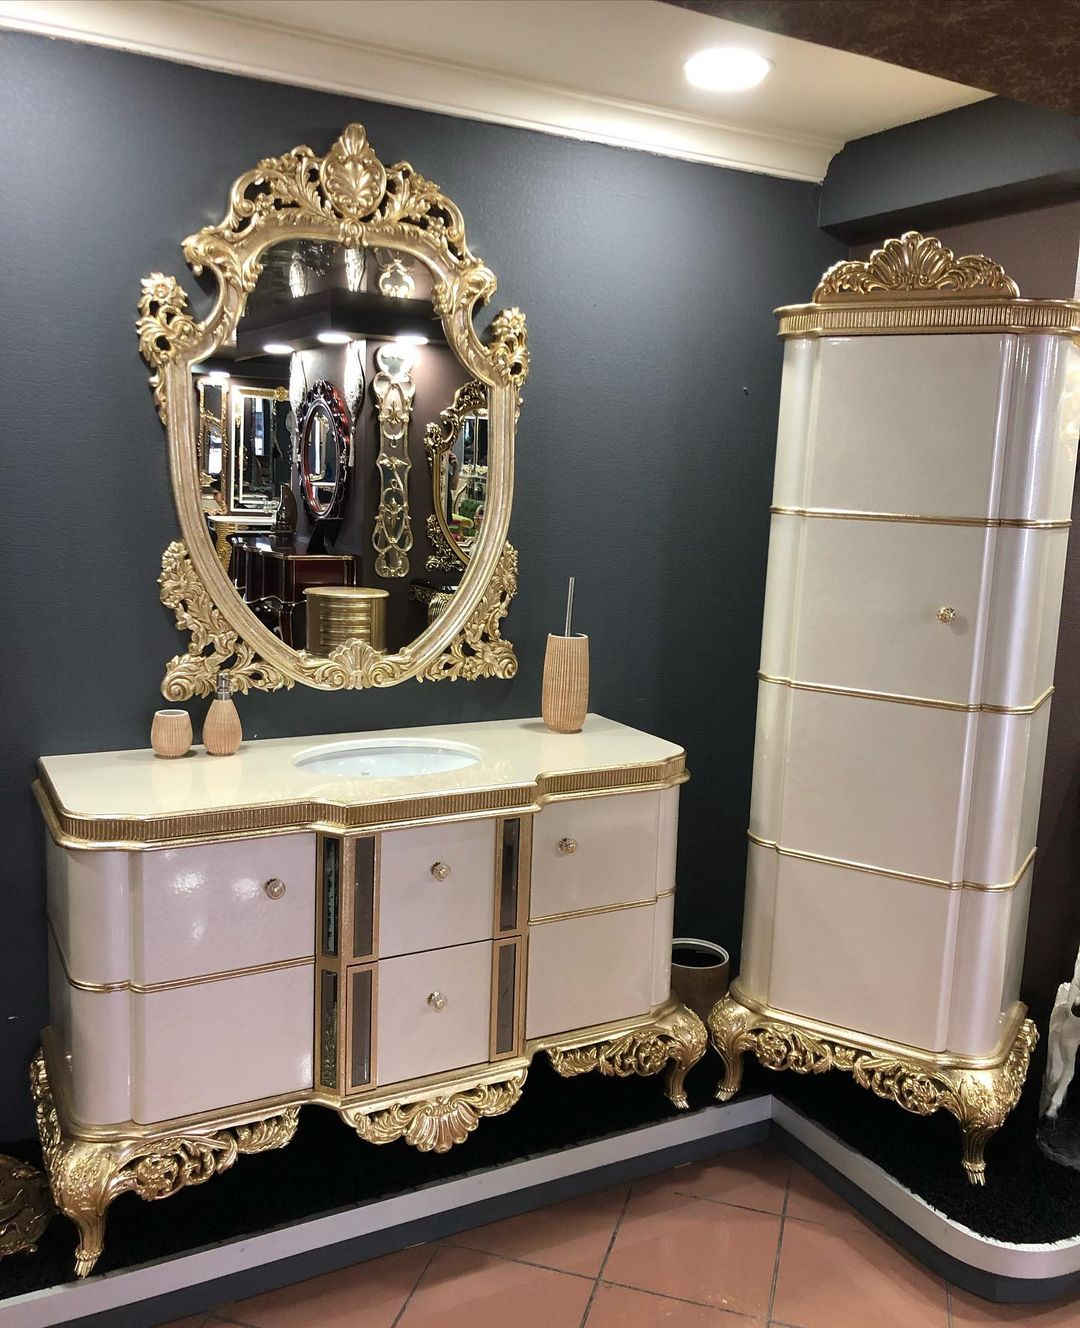 Hanging Mirrors and other mirror designs (6)